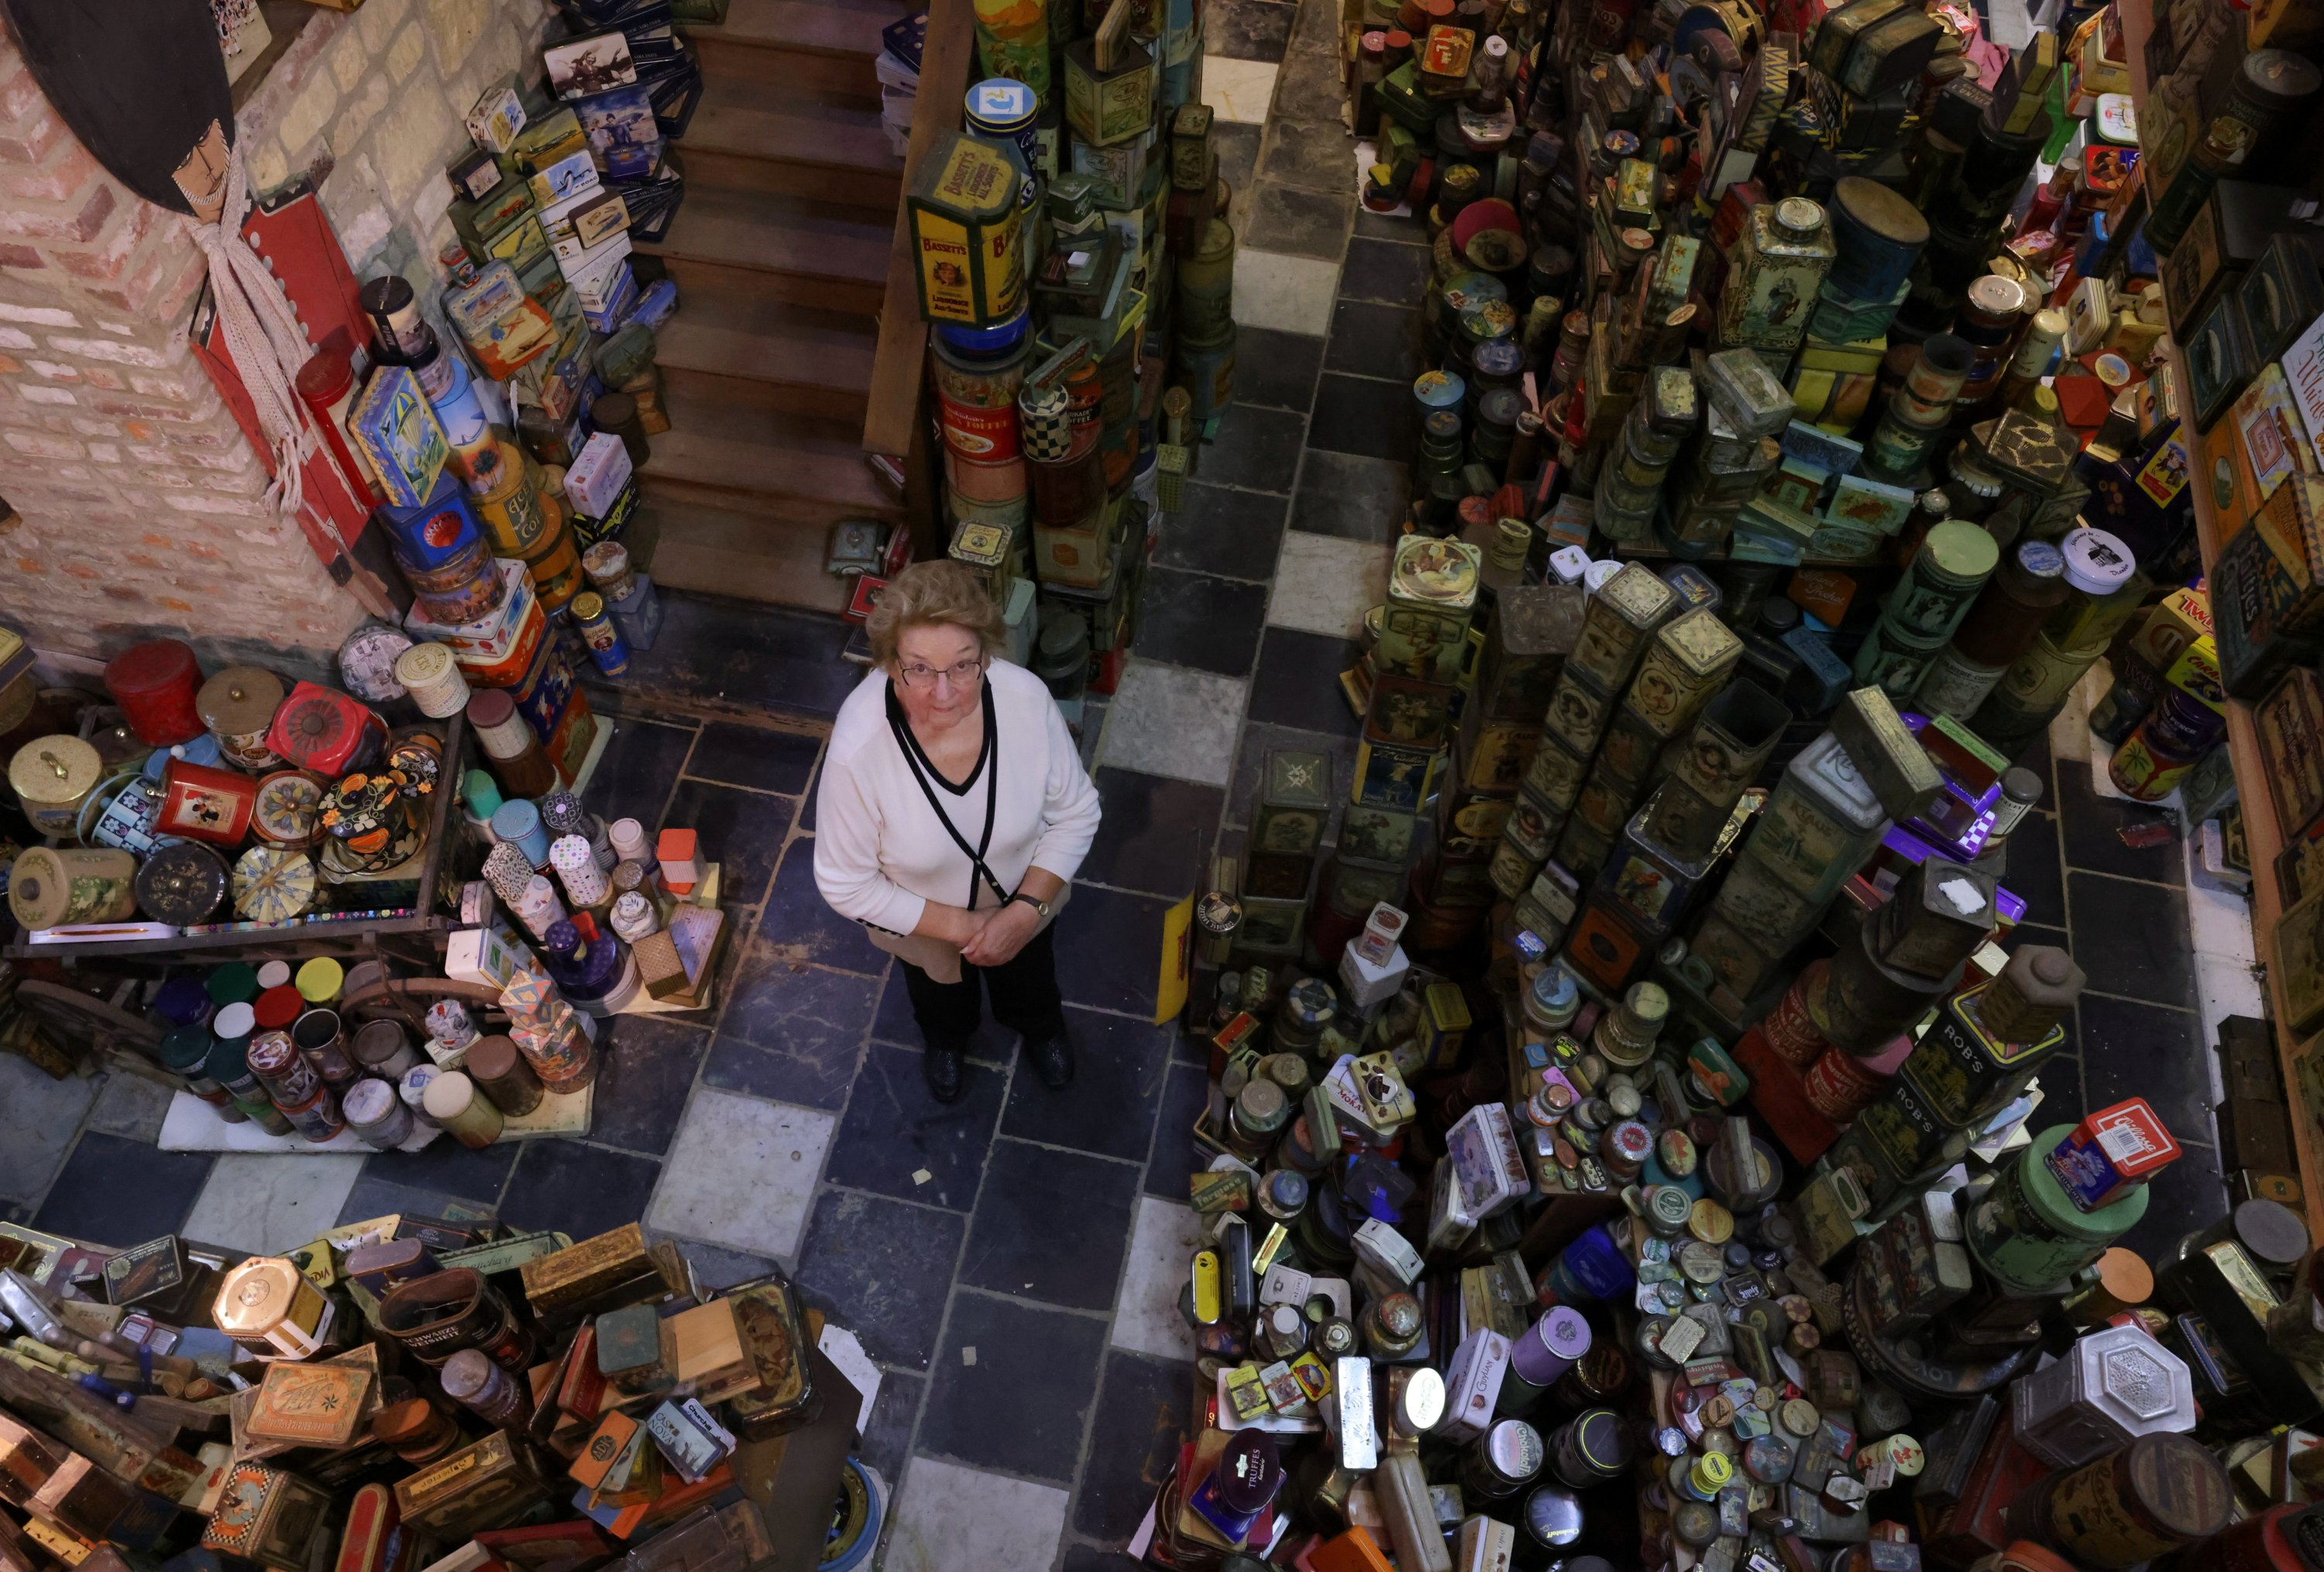 Yvette Dardenne, stands among thousands of vintage lithographed tin boxes, which are part of a huge collection of almost 60,000 pieces started 30 years ago, at her house in Grand-Hallet, Belgium, Aug. 5, 2021. (Reuters Photo)